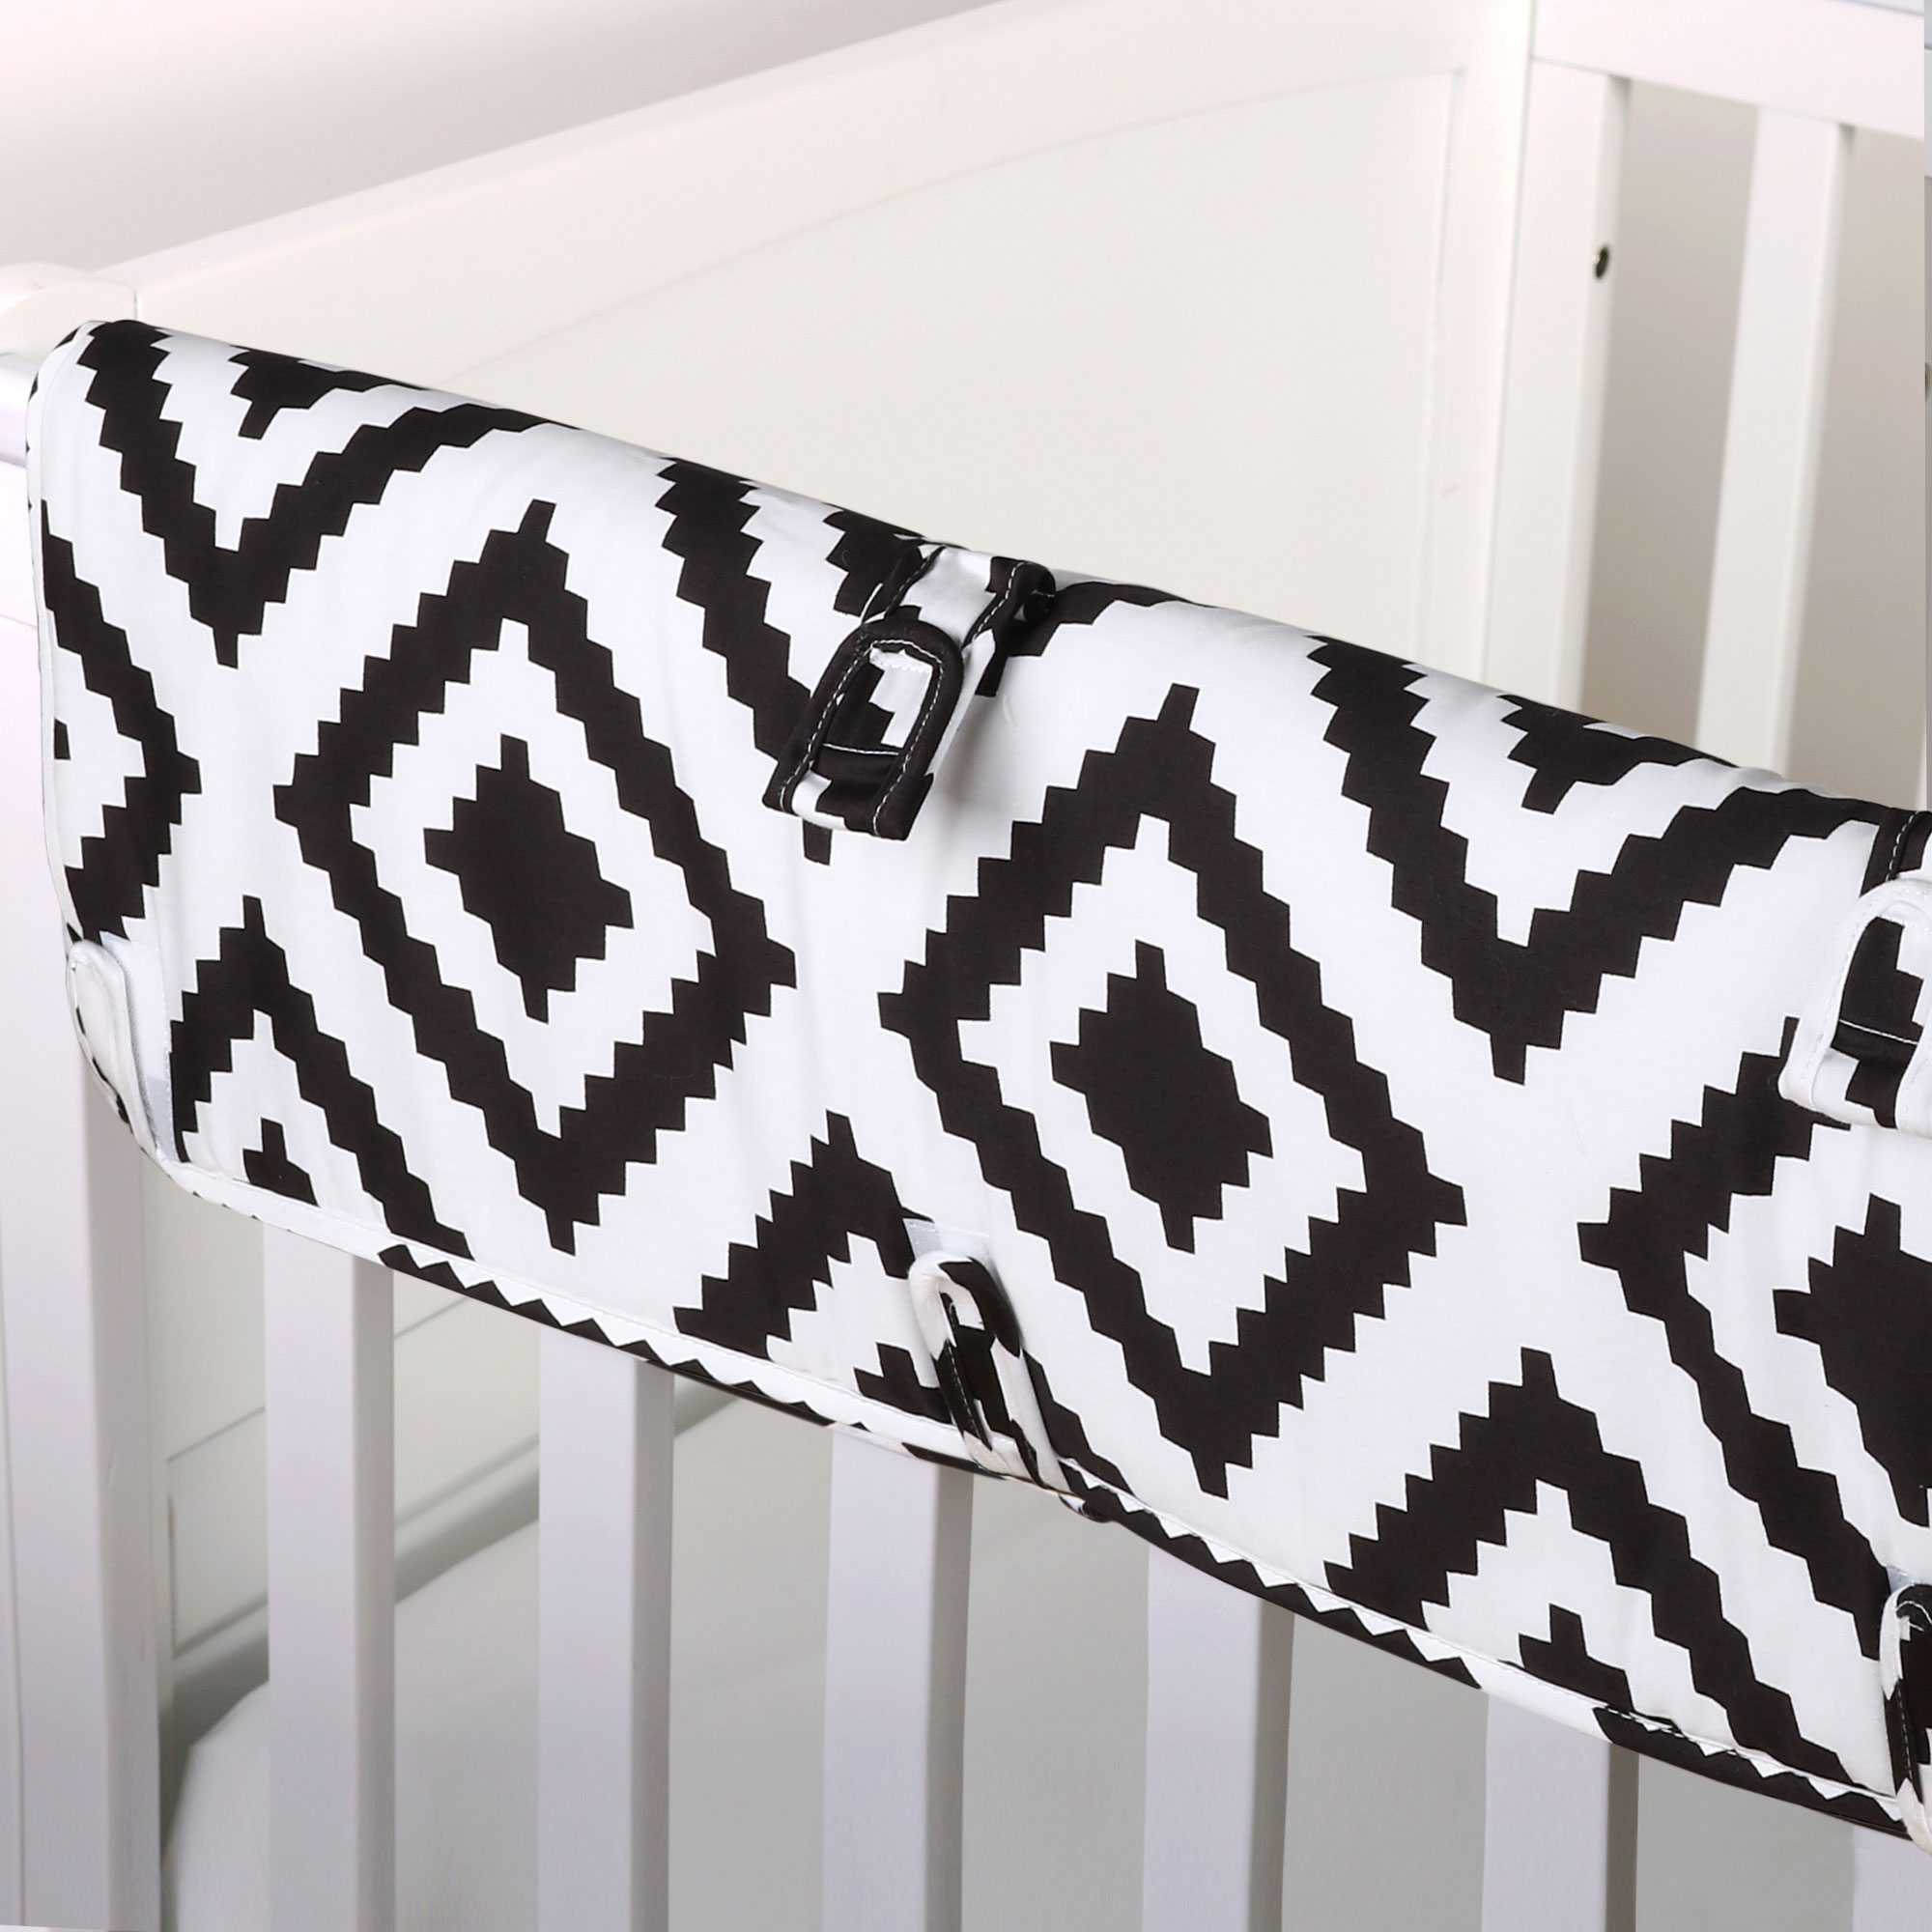 The Peanut Shell Baby Crib Rail Guard - Black Diamond Geometric Tile Print - 100% Cotton Sateen Cover, Polyester Fill